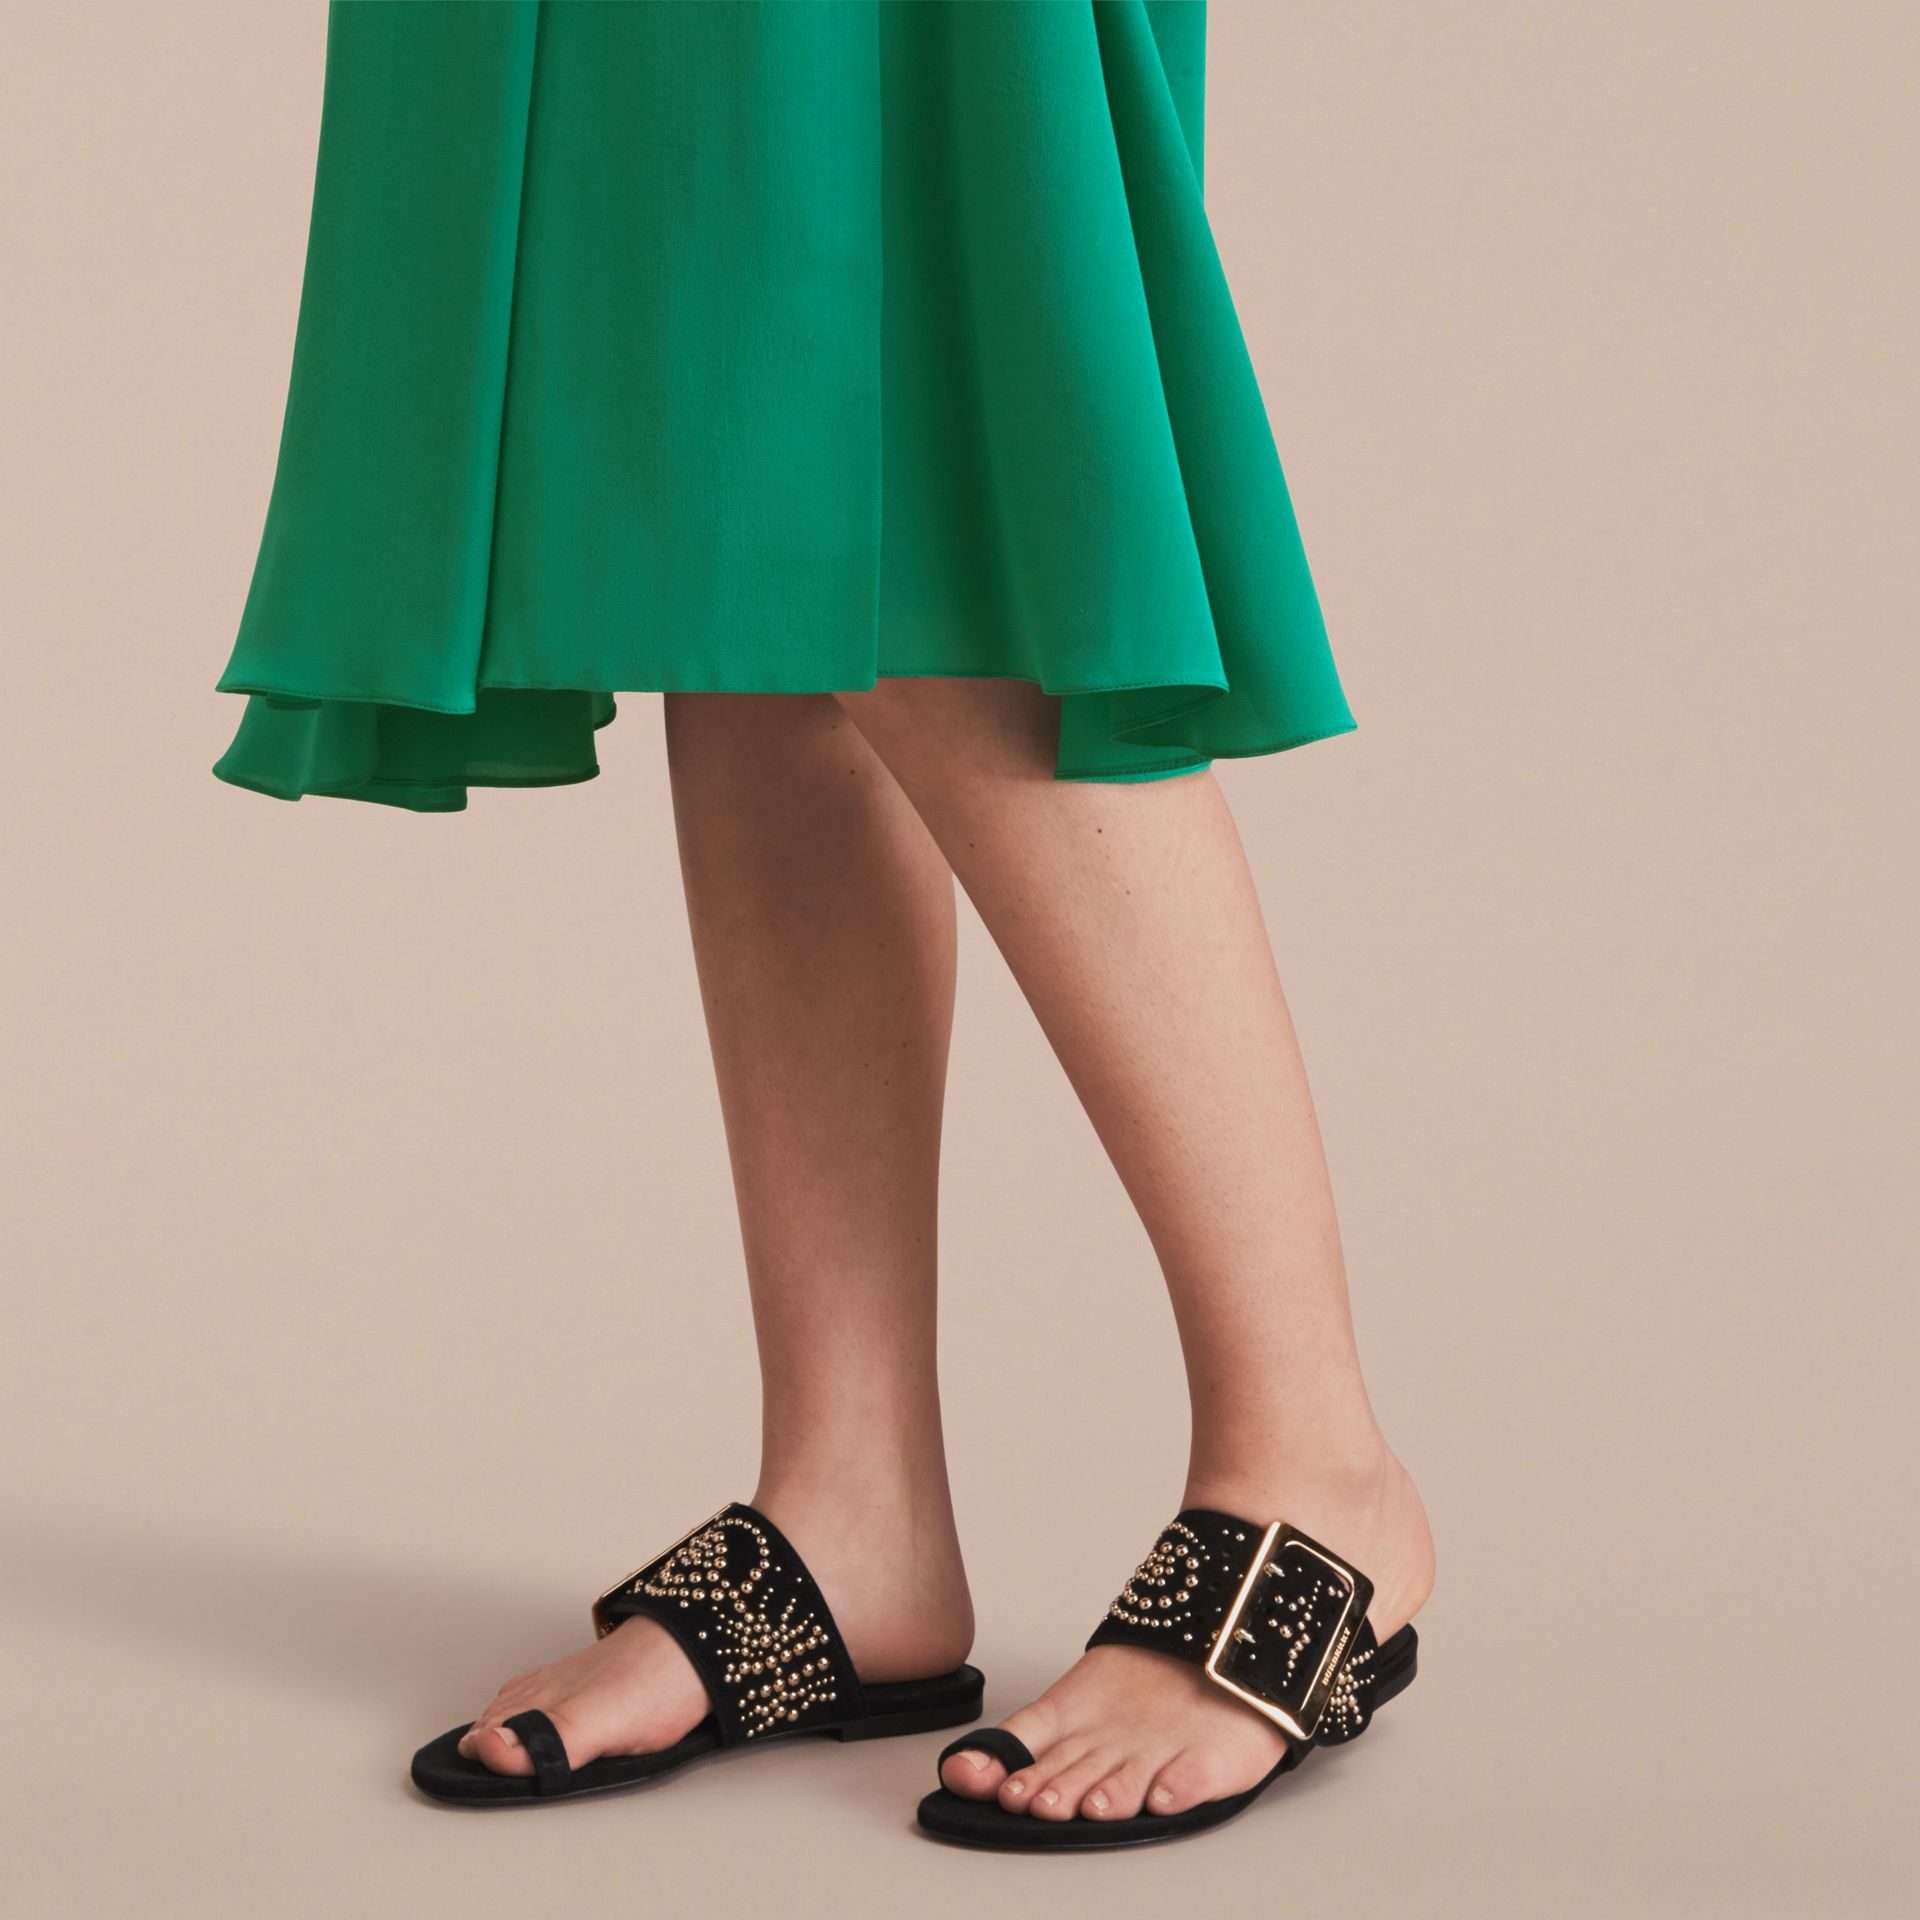 Studded Suede Sandals with Buckle Detail in Black - Women | Burberry - gallery image 3